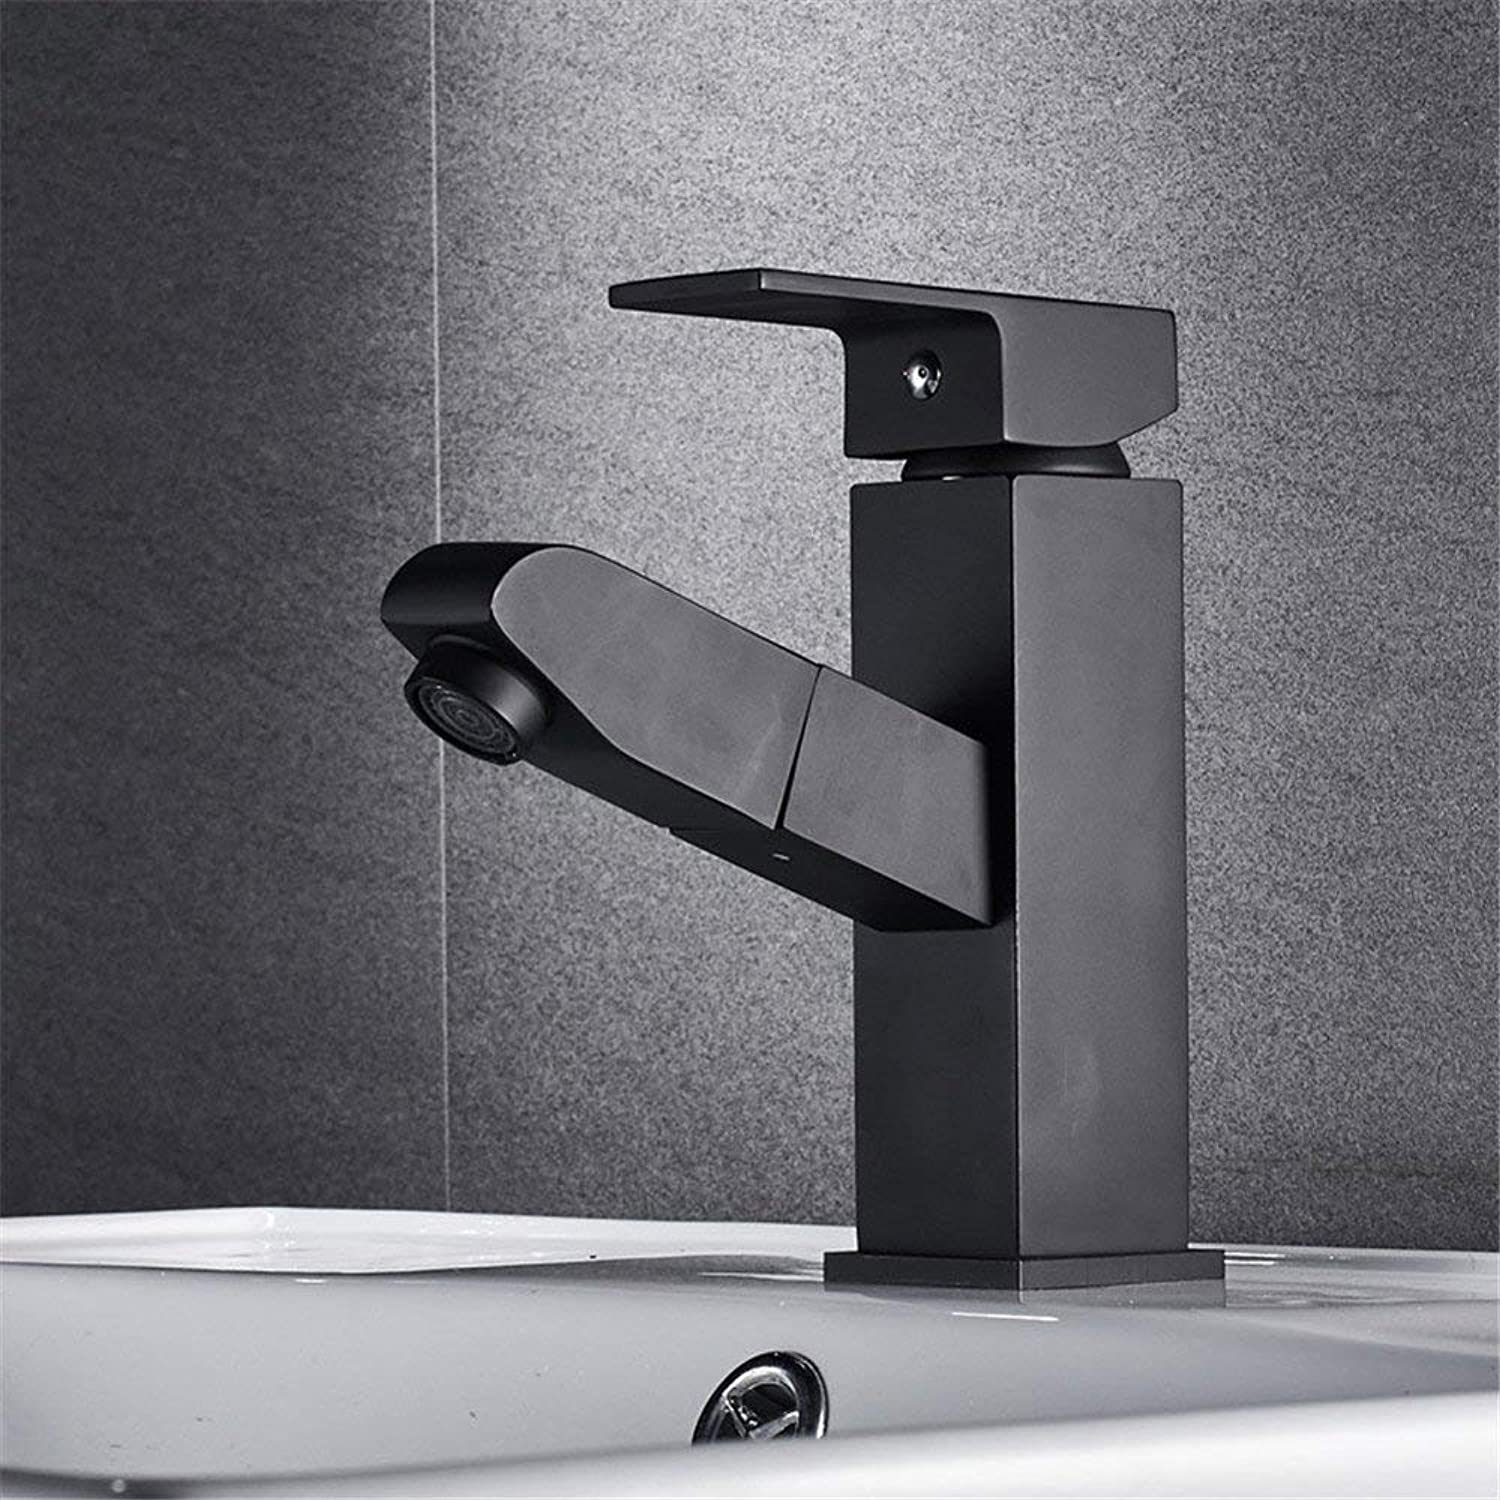 FuweiEncore Shampoo, Basin, Faucet, Pull, Copper, Cold, Hot Water Faucet, Washroom, Bathroom, Telescopic Faucet Cabinet, Single Hole, Right Angle, Black. (color   -, Size   -)